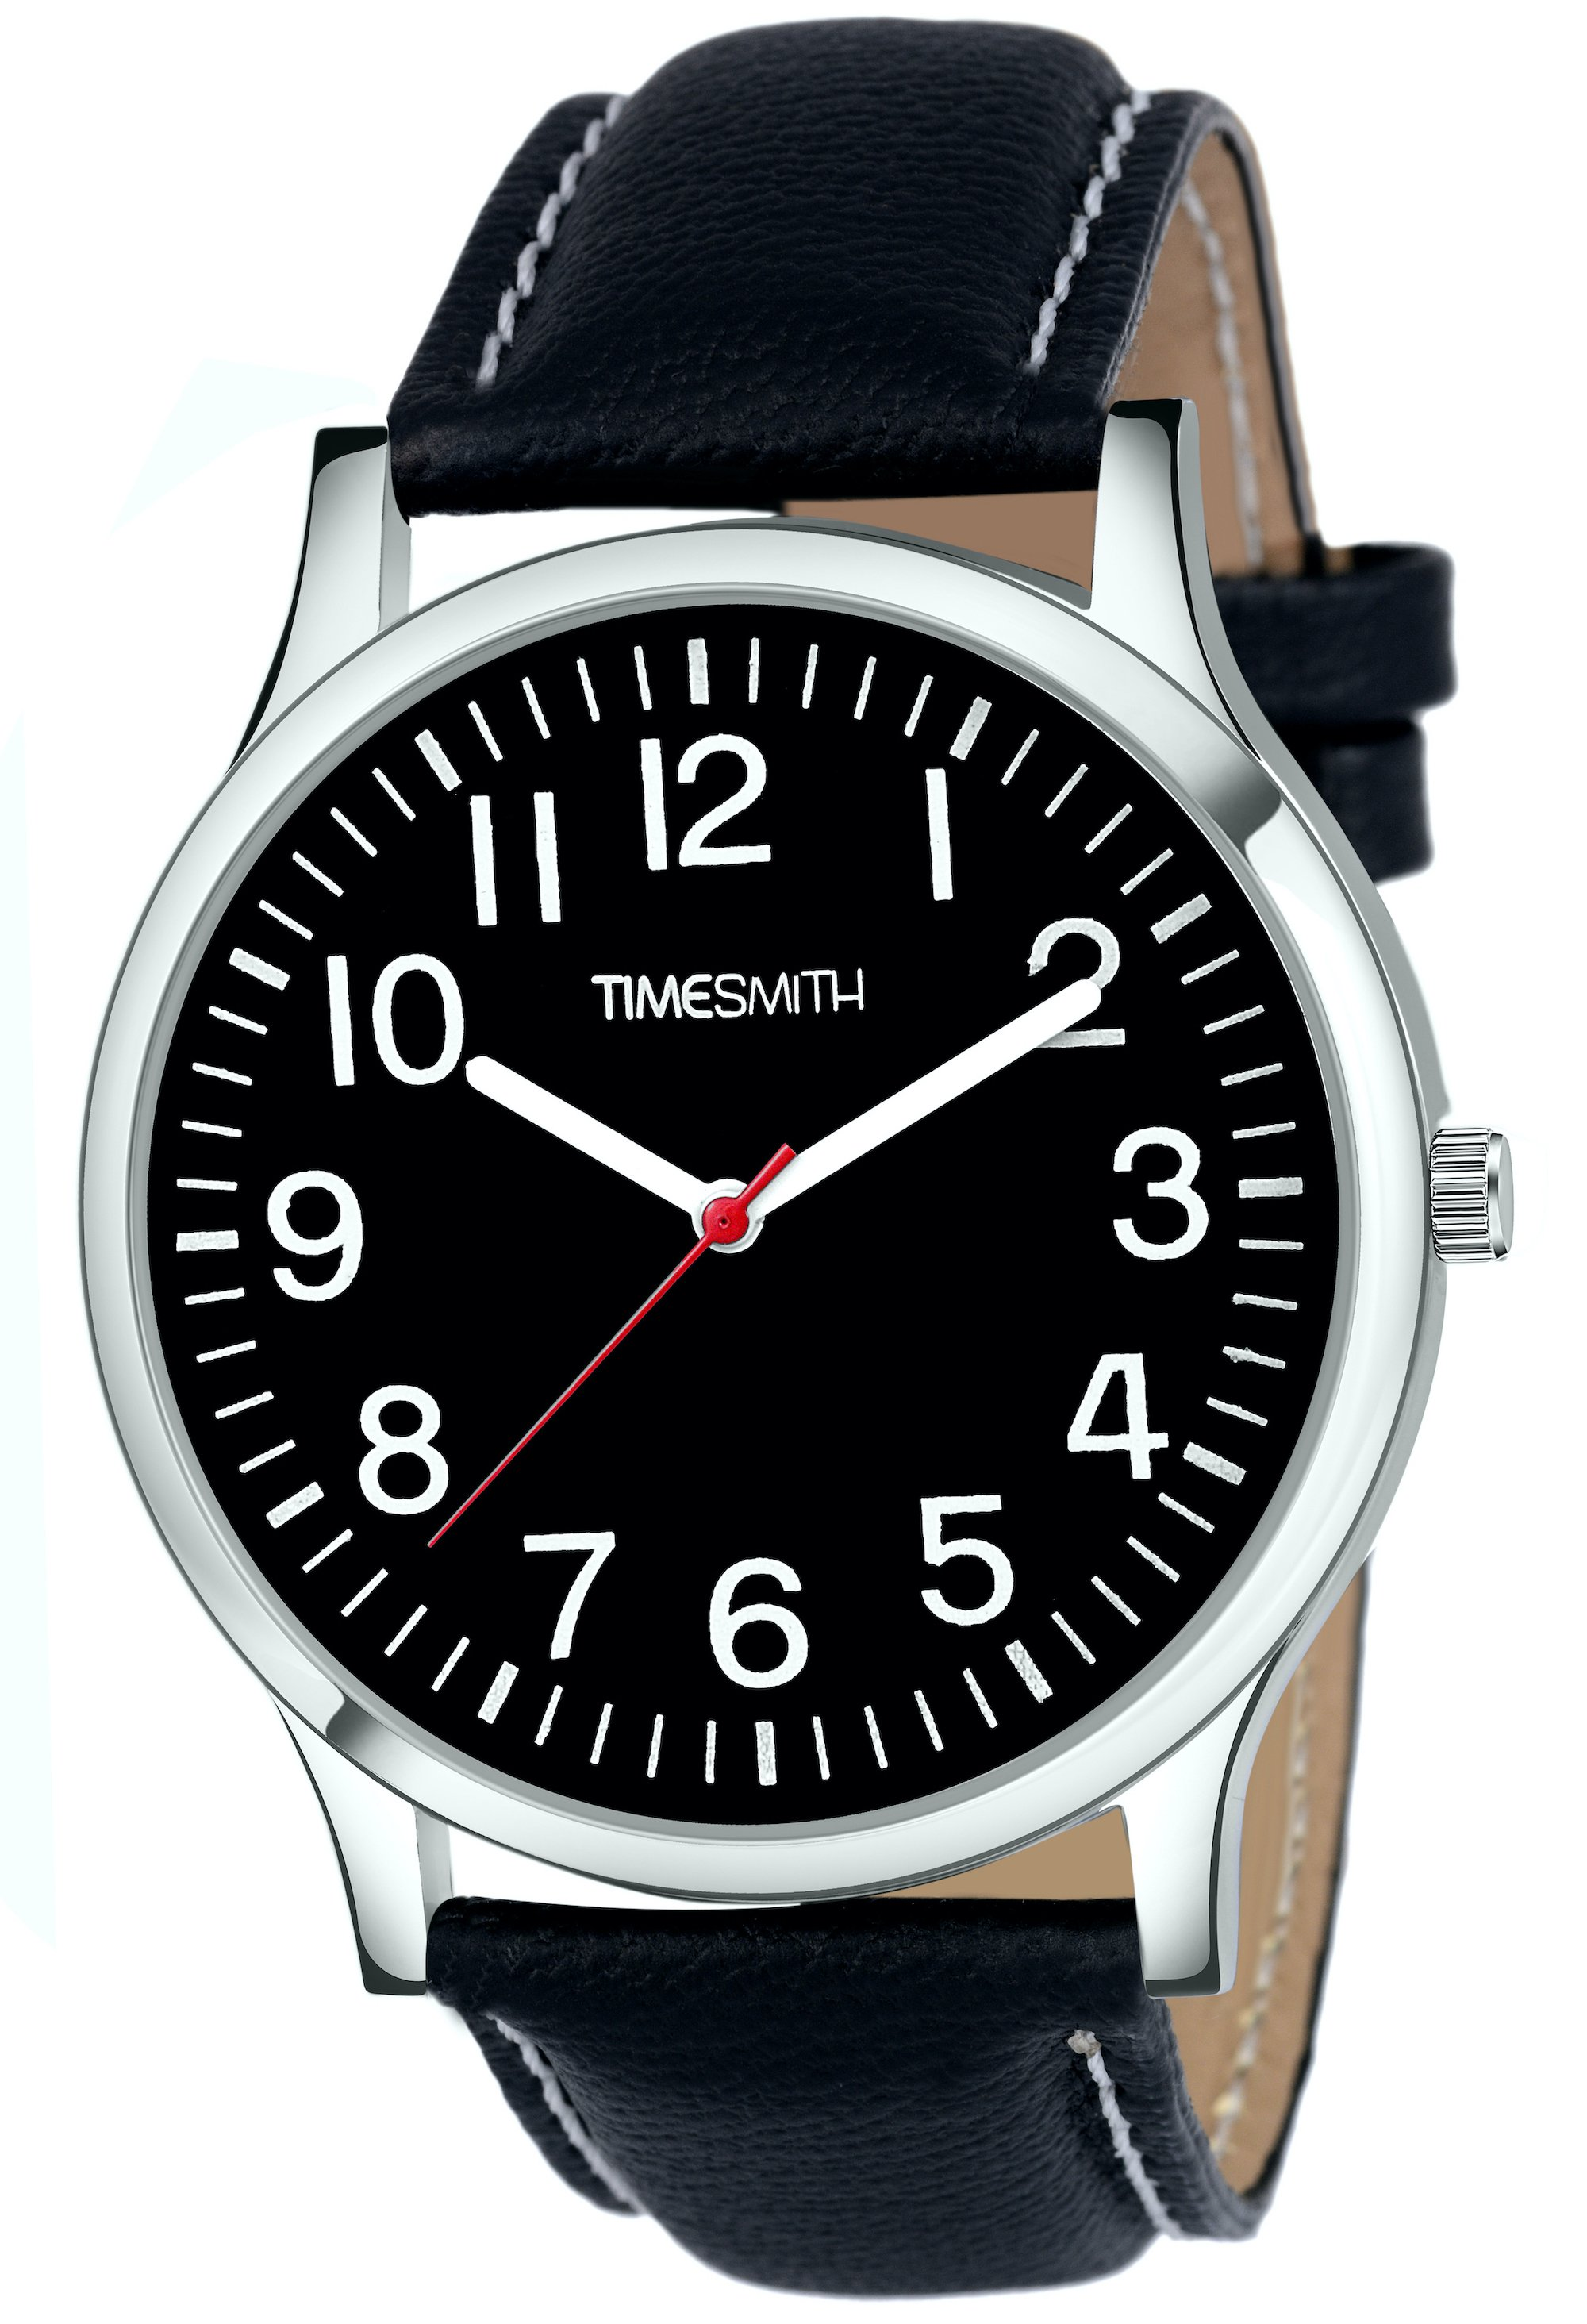 Timesmith | Timesmith Black Leather Black Dial Watch For Men CTC-010 For Men